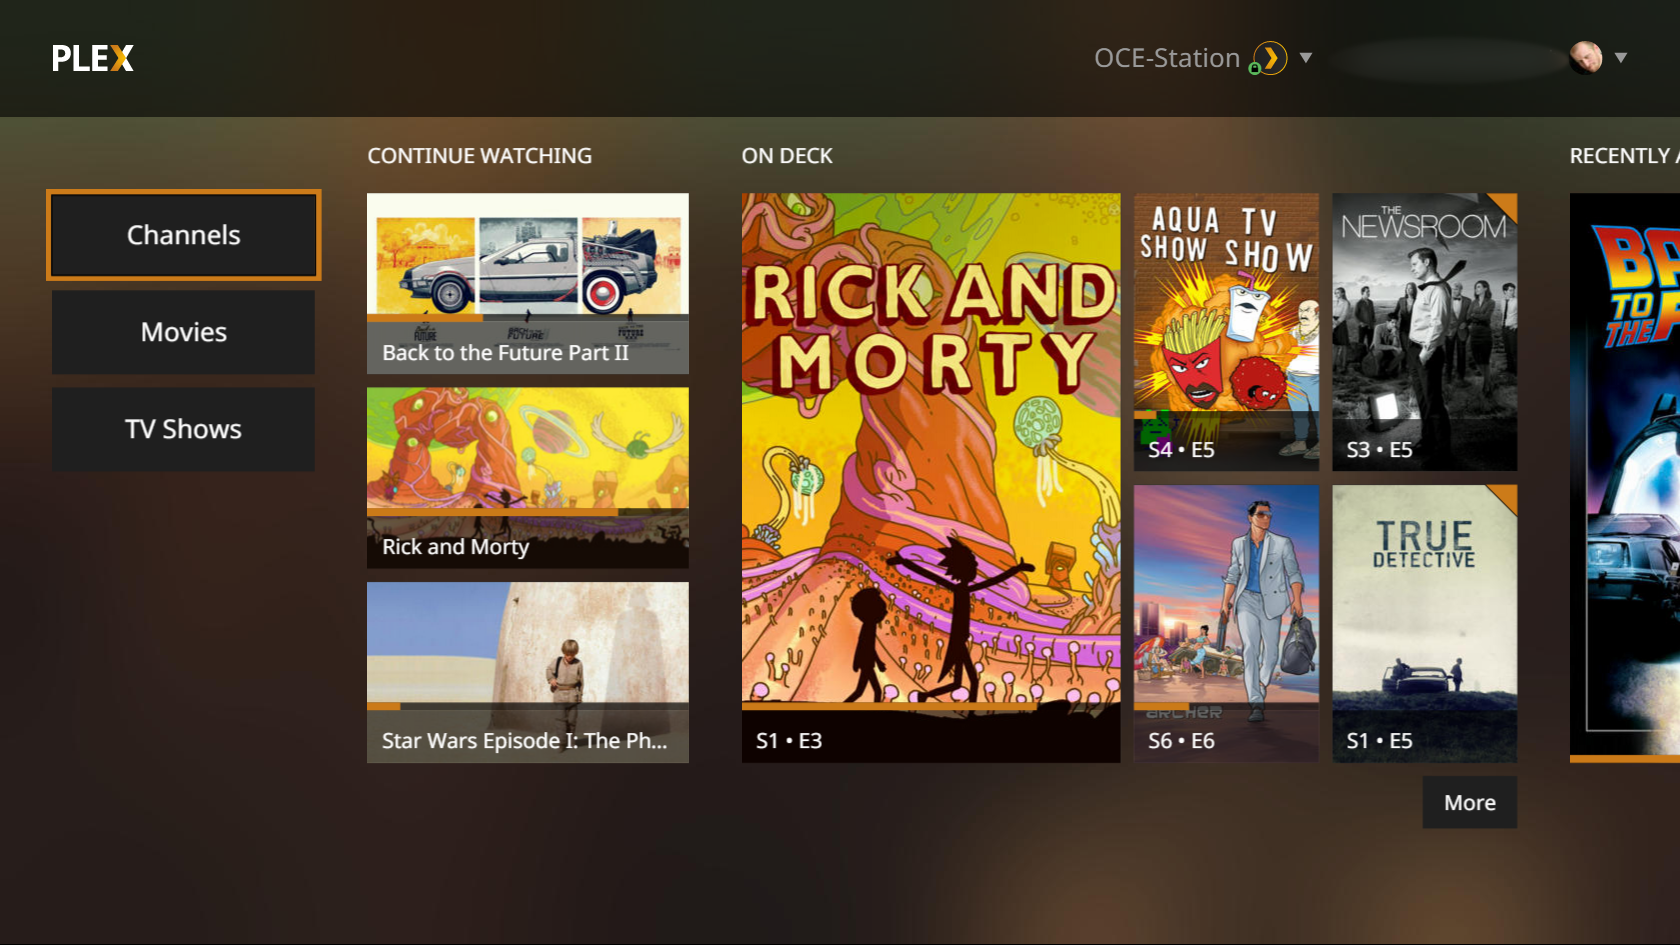 Plex Media Player Replaces Plex Home Theatre, Looks Awesome